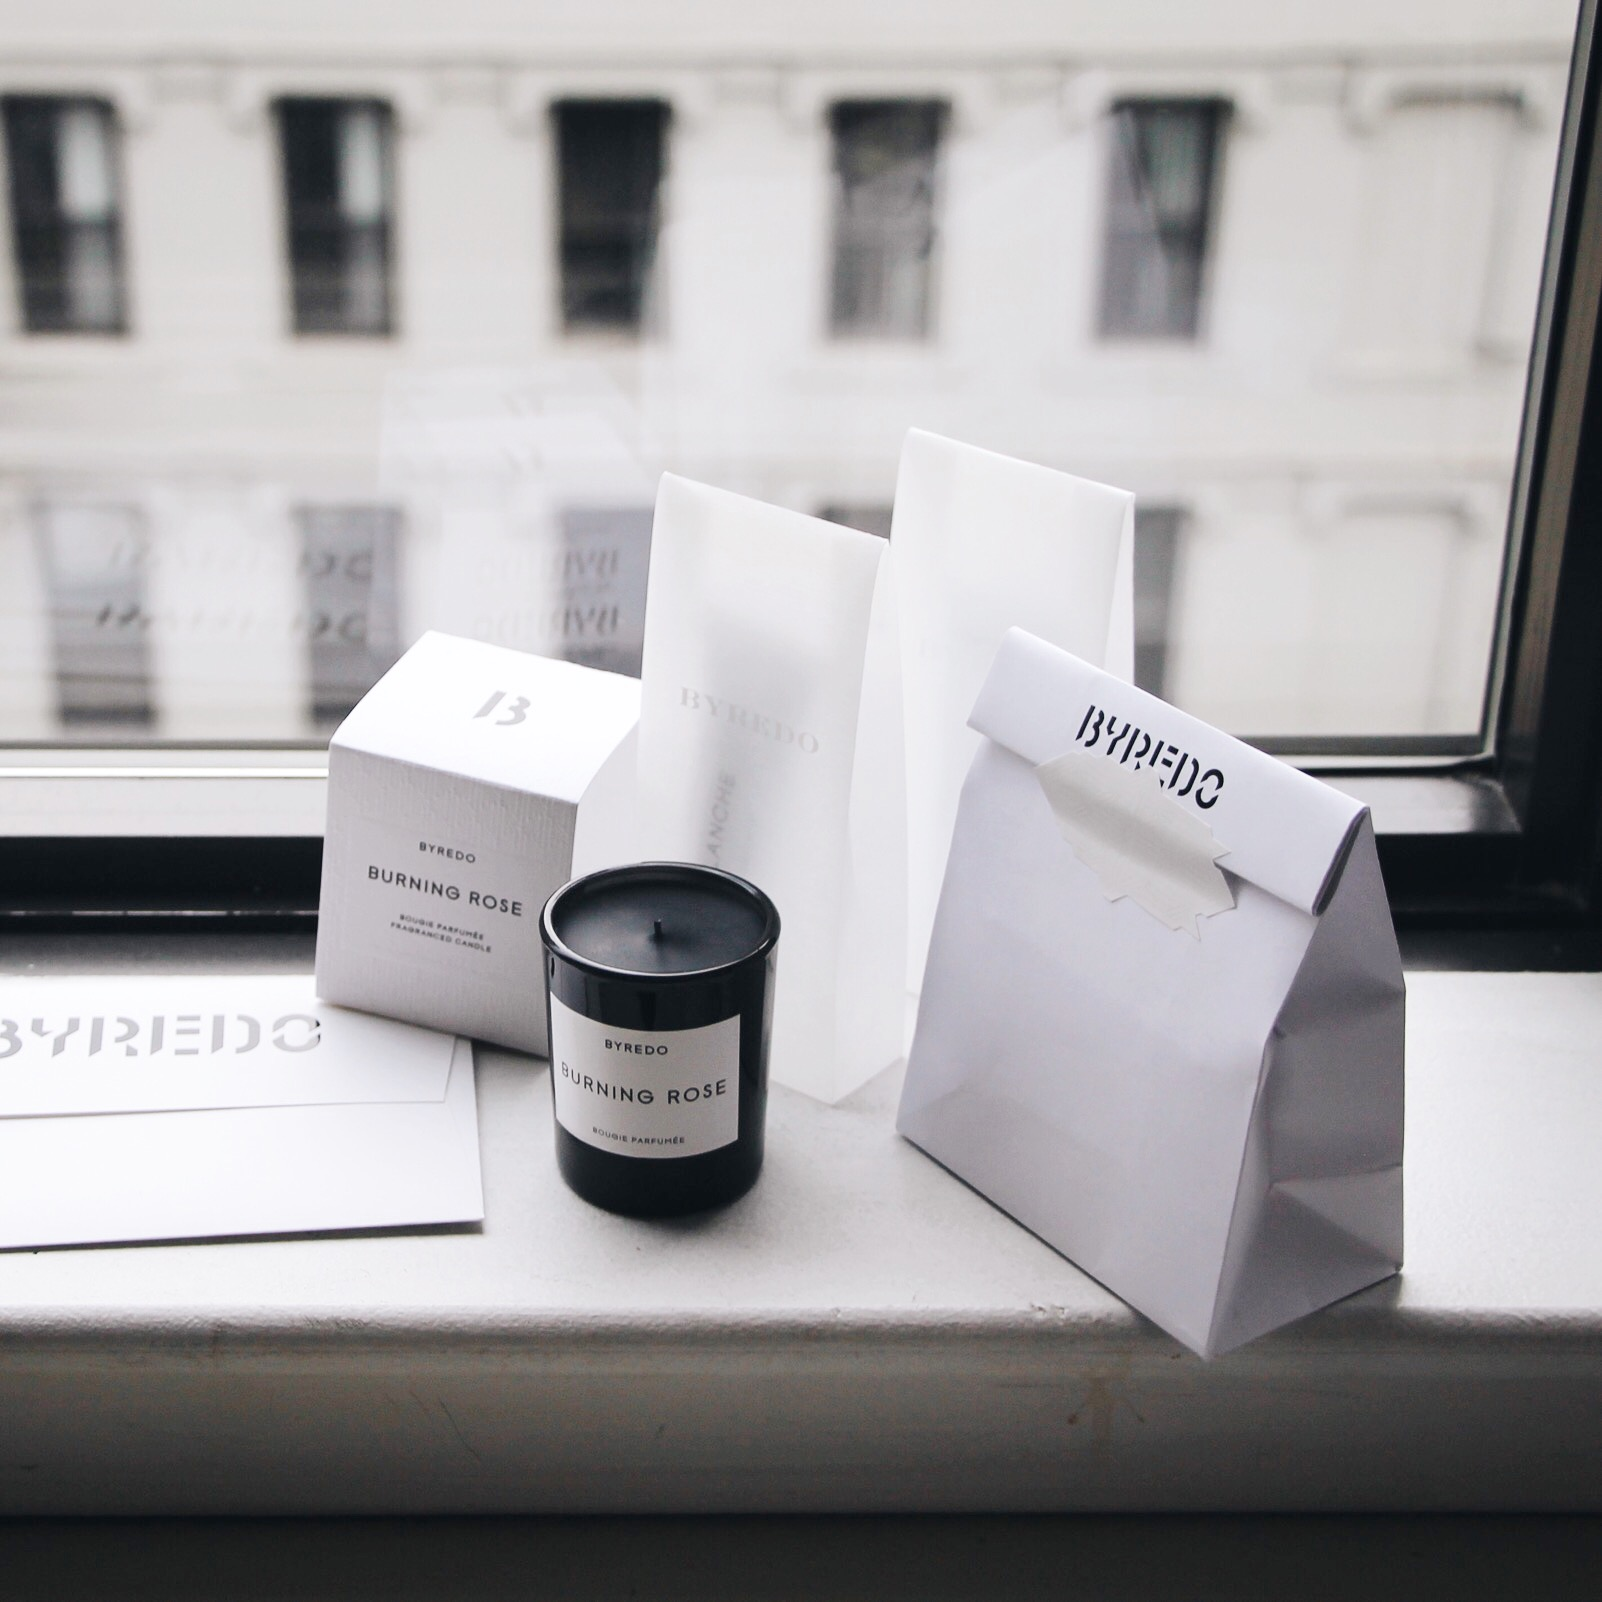 Byredo Gift Bag, Byredo, Byredo 10th Anniversary party, Burning Rose Sample, Byredo Samples, Byredo Hand Cream